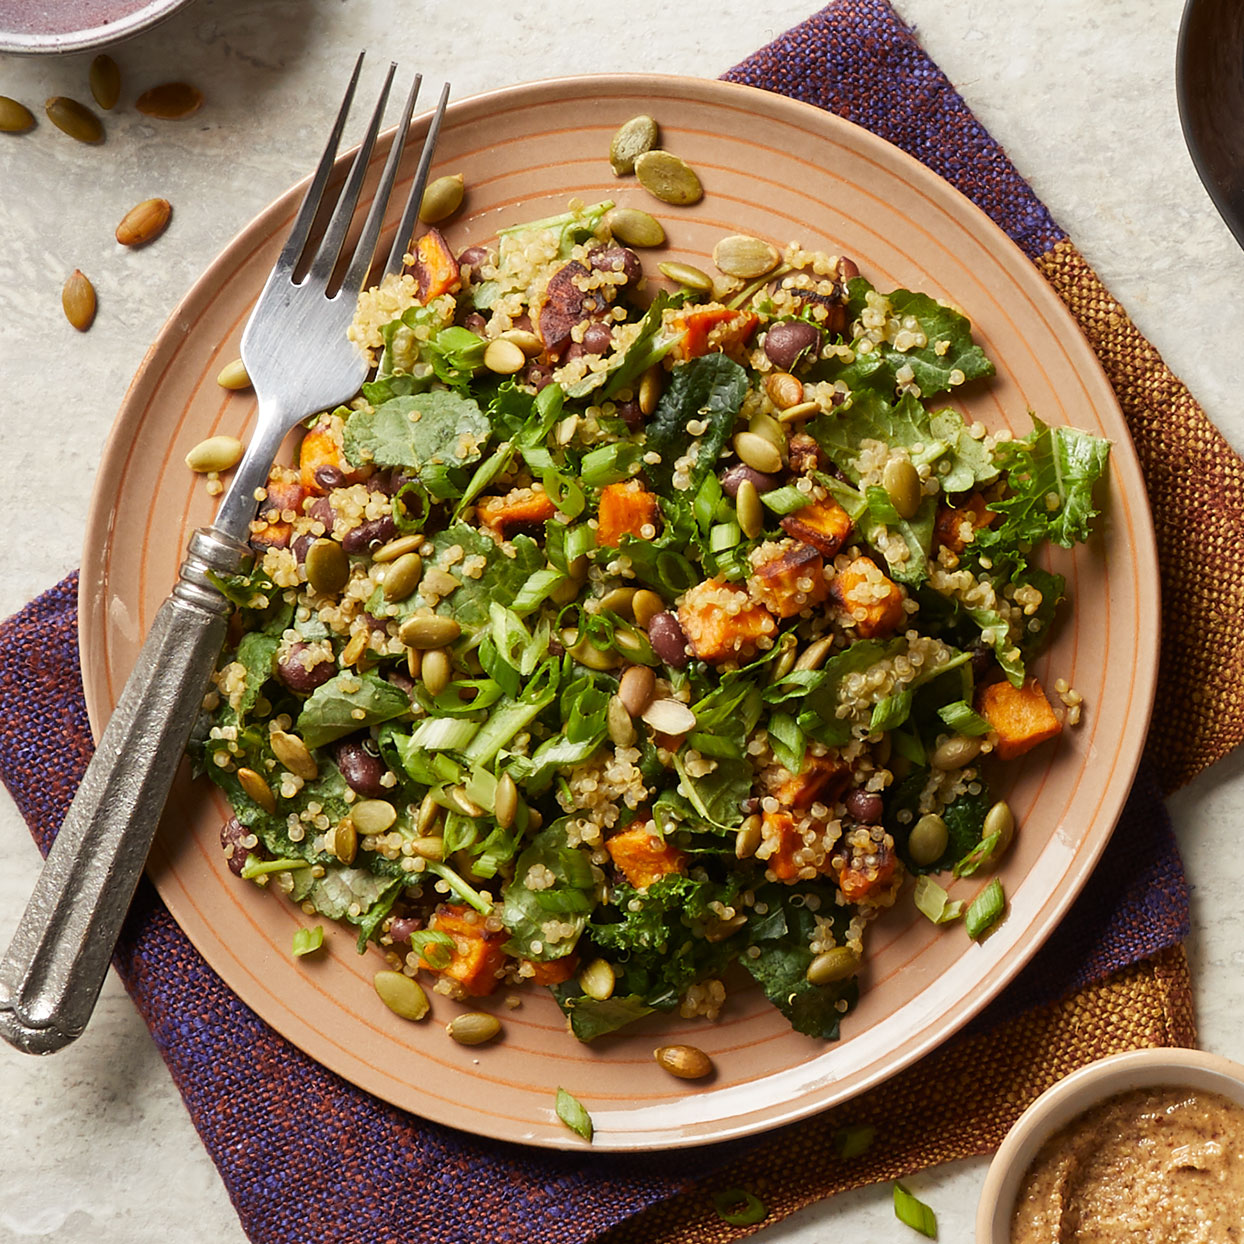 Winter Kale & Quinoa Salad with Avocado Allrecipes Trusted Brands